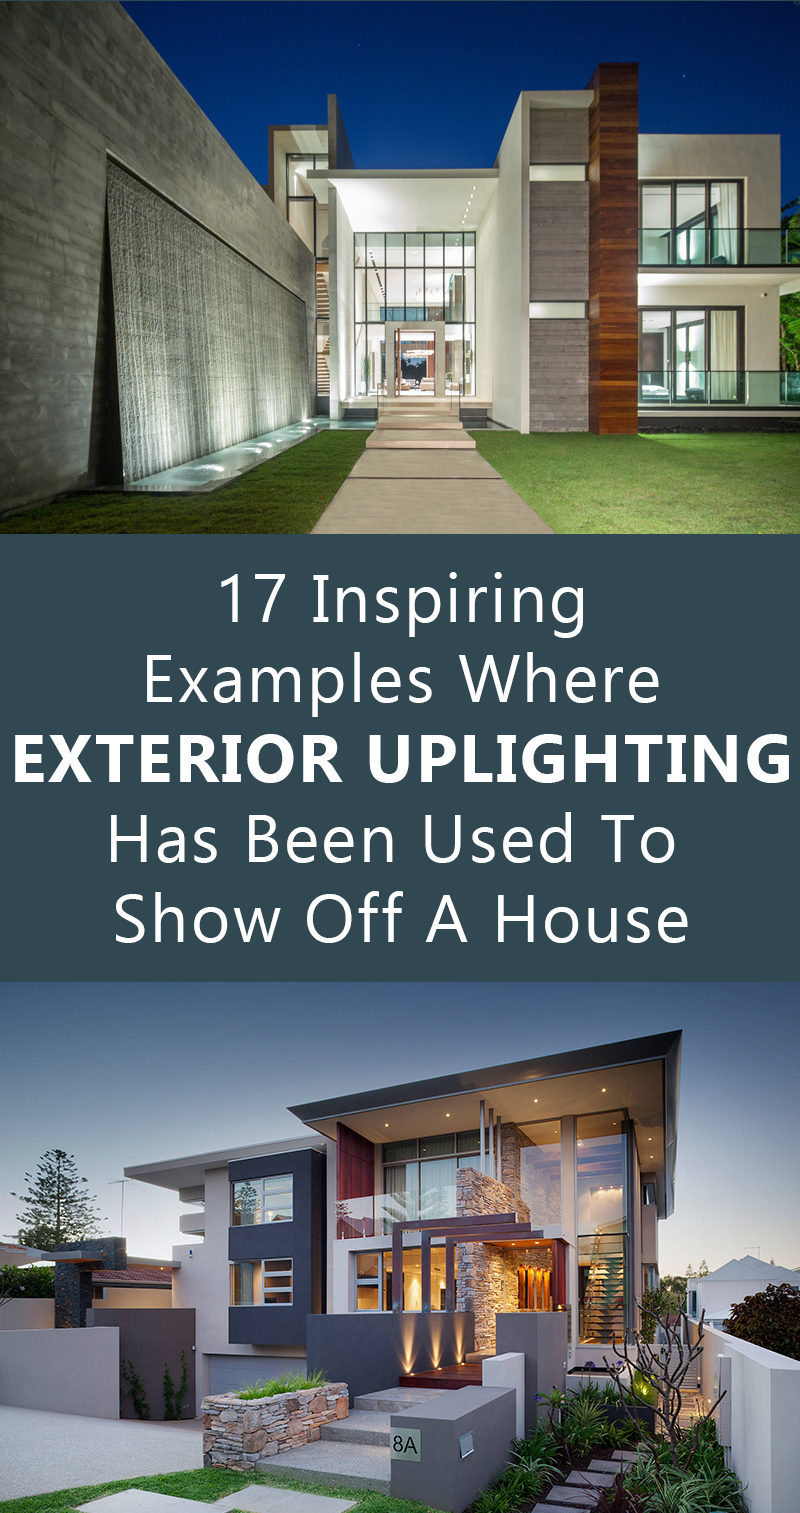 17 Inspiring Examples Where Exterior Uplighting Has Been Used To Show Off A House